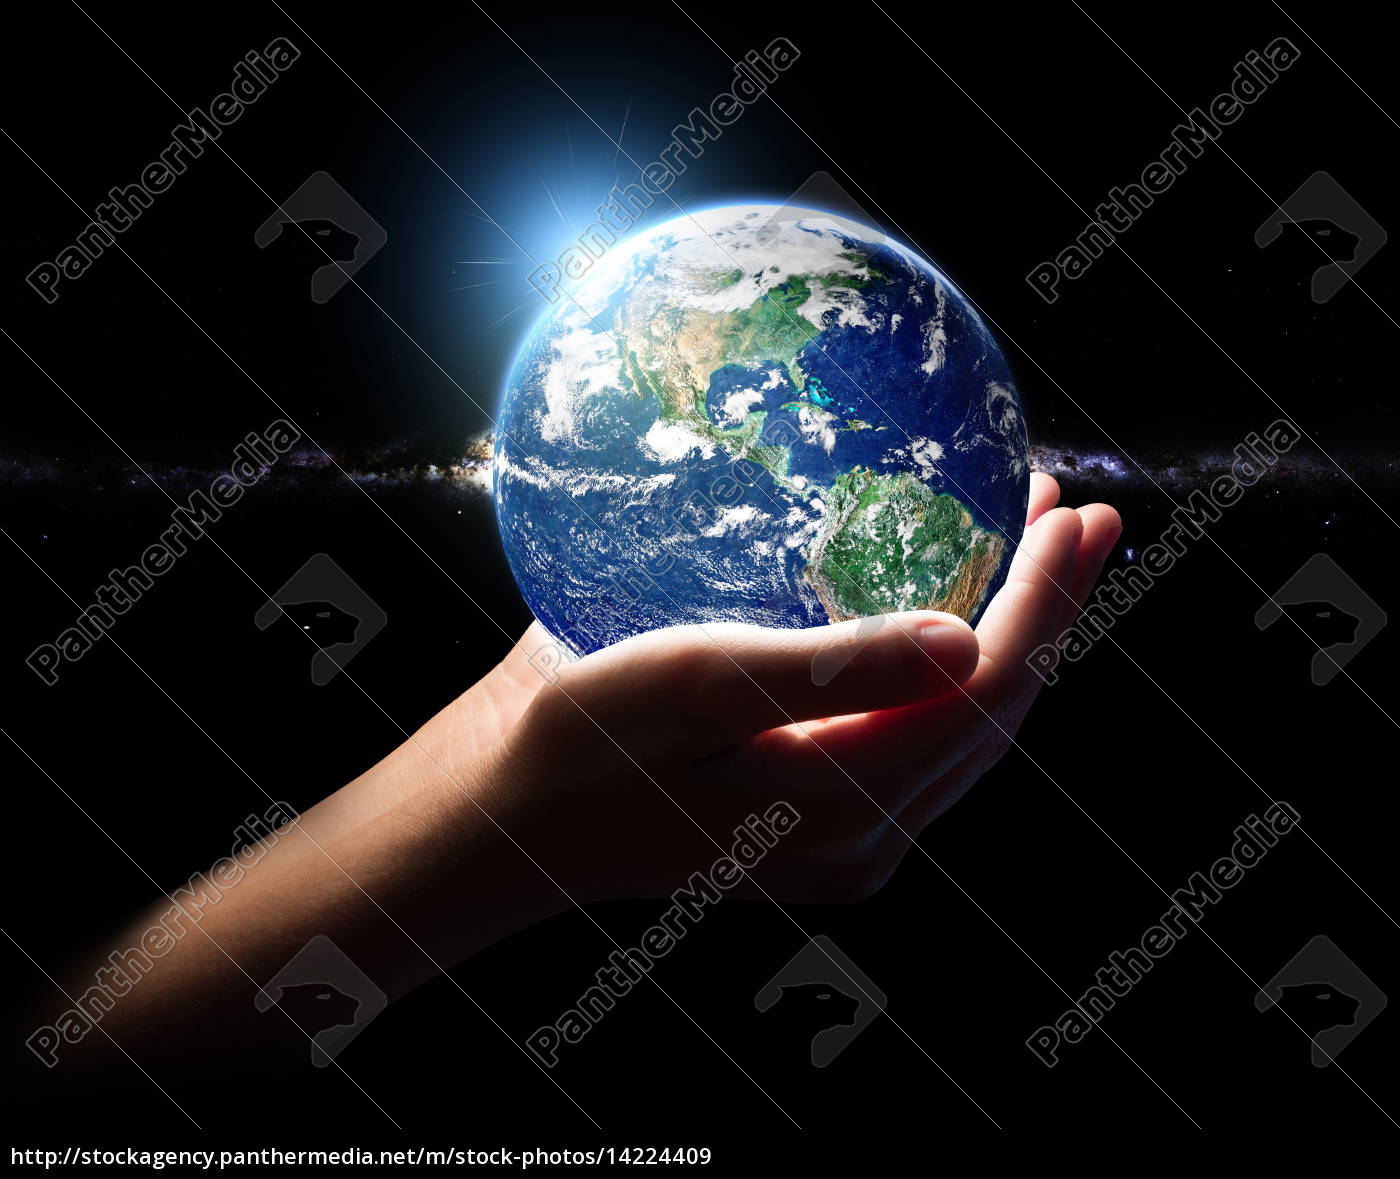 hand, hold, earth, and, in, universe - 14224409